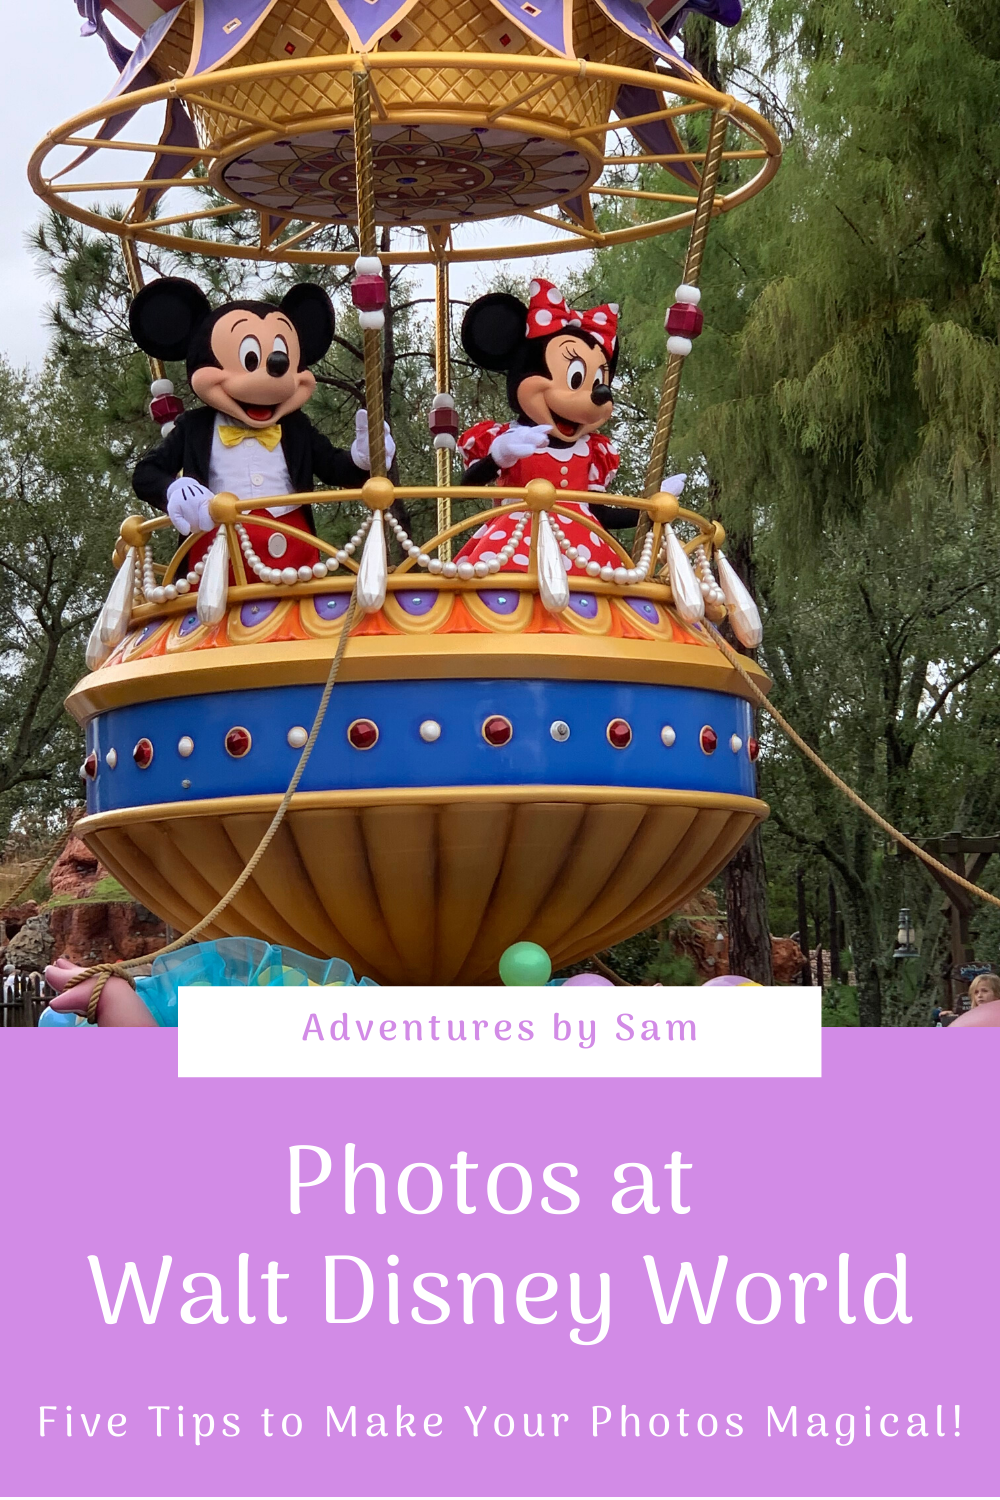 Tips for Taking the Best Photos at Walt Disney World (Thumbnail)